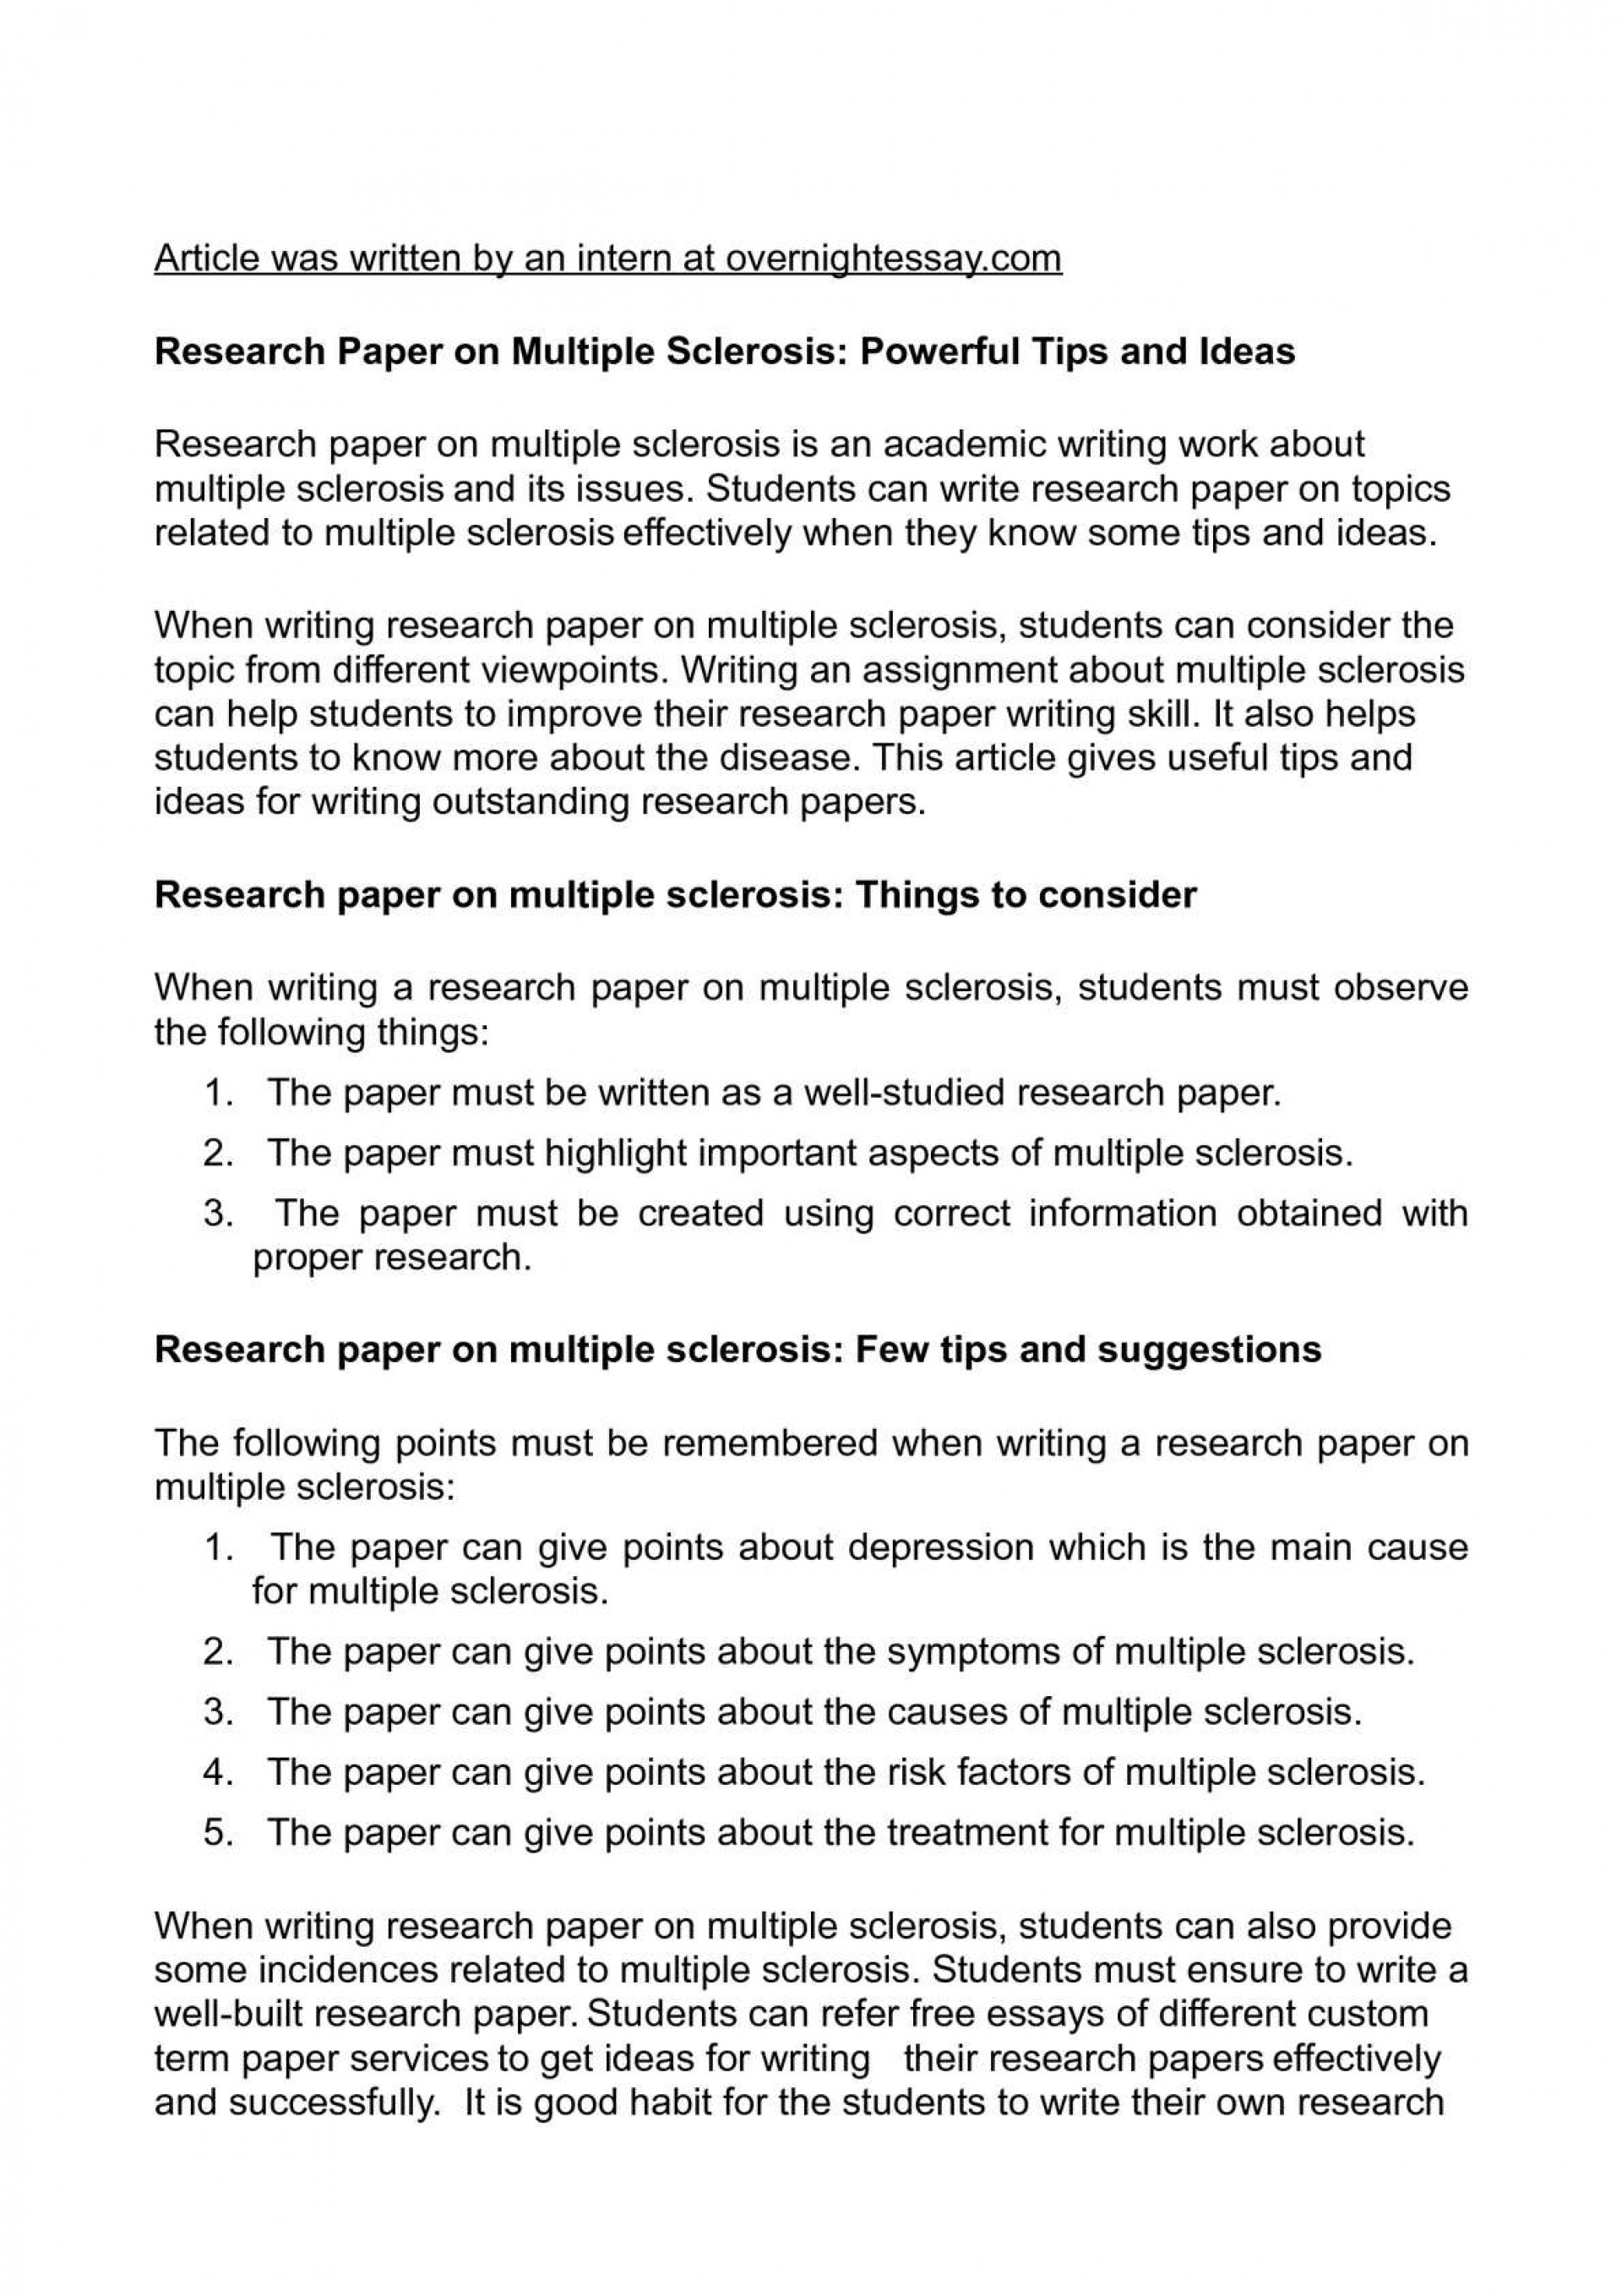 015 P1 Research Paper Write Frightening Papers In Latex My For Me Online Free 1920